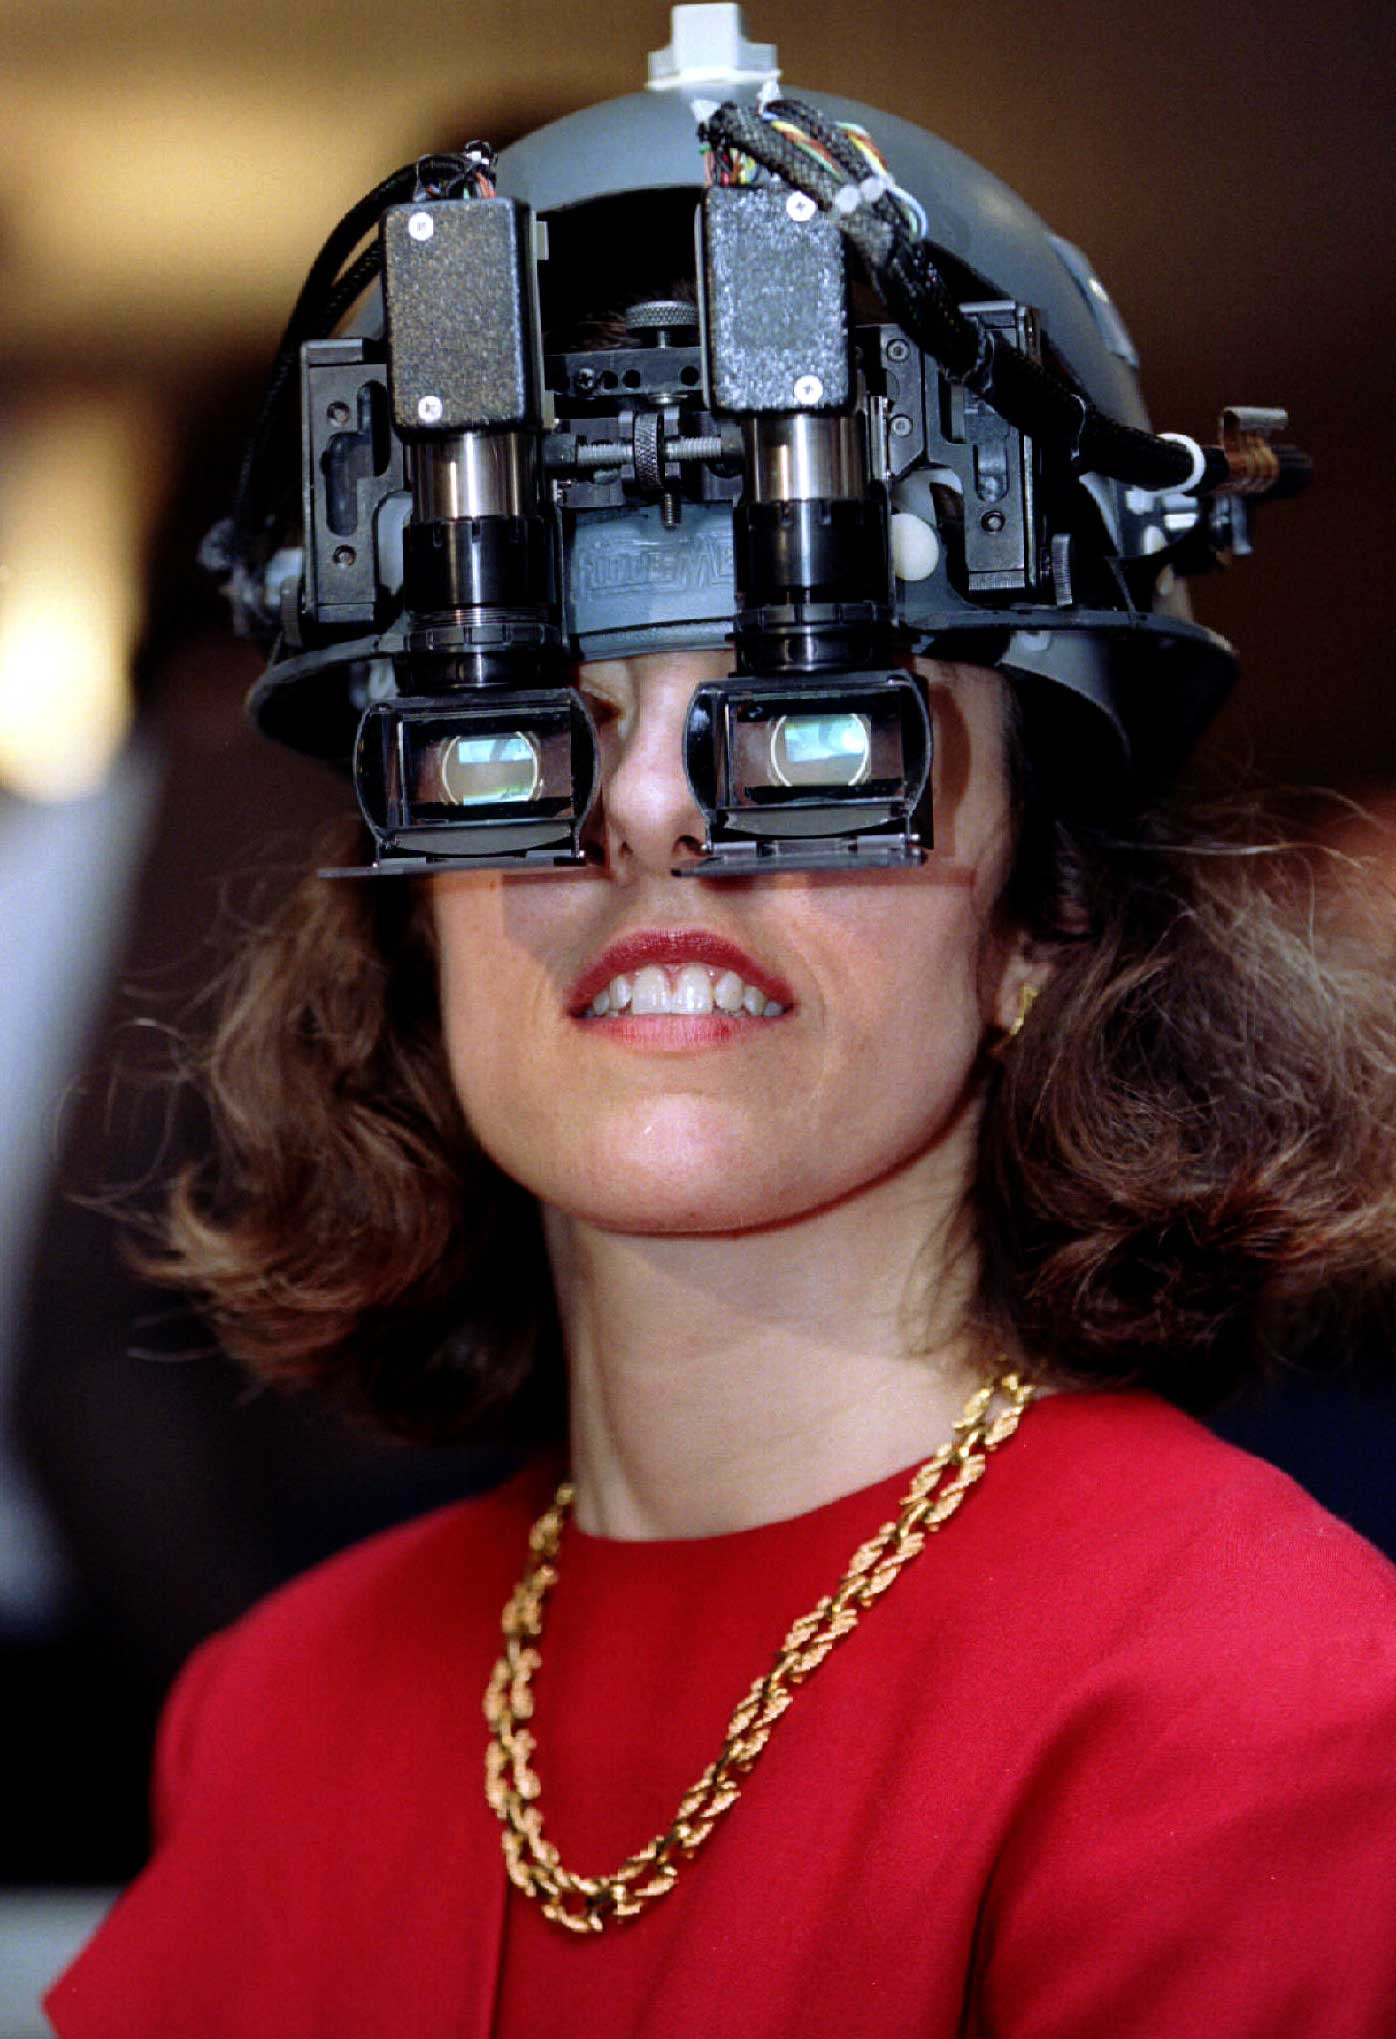 <strong>1995</strong>                                                                      A visitor checking out a virtual reality head-set at the G7 Information Society Showcase taking place at the European Parliament. The head-set was linked to a camera elsewhere in the building which the visitor could control through head movements.